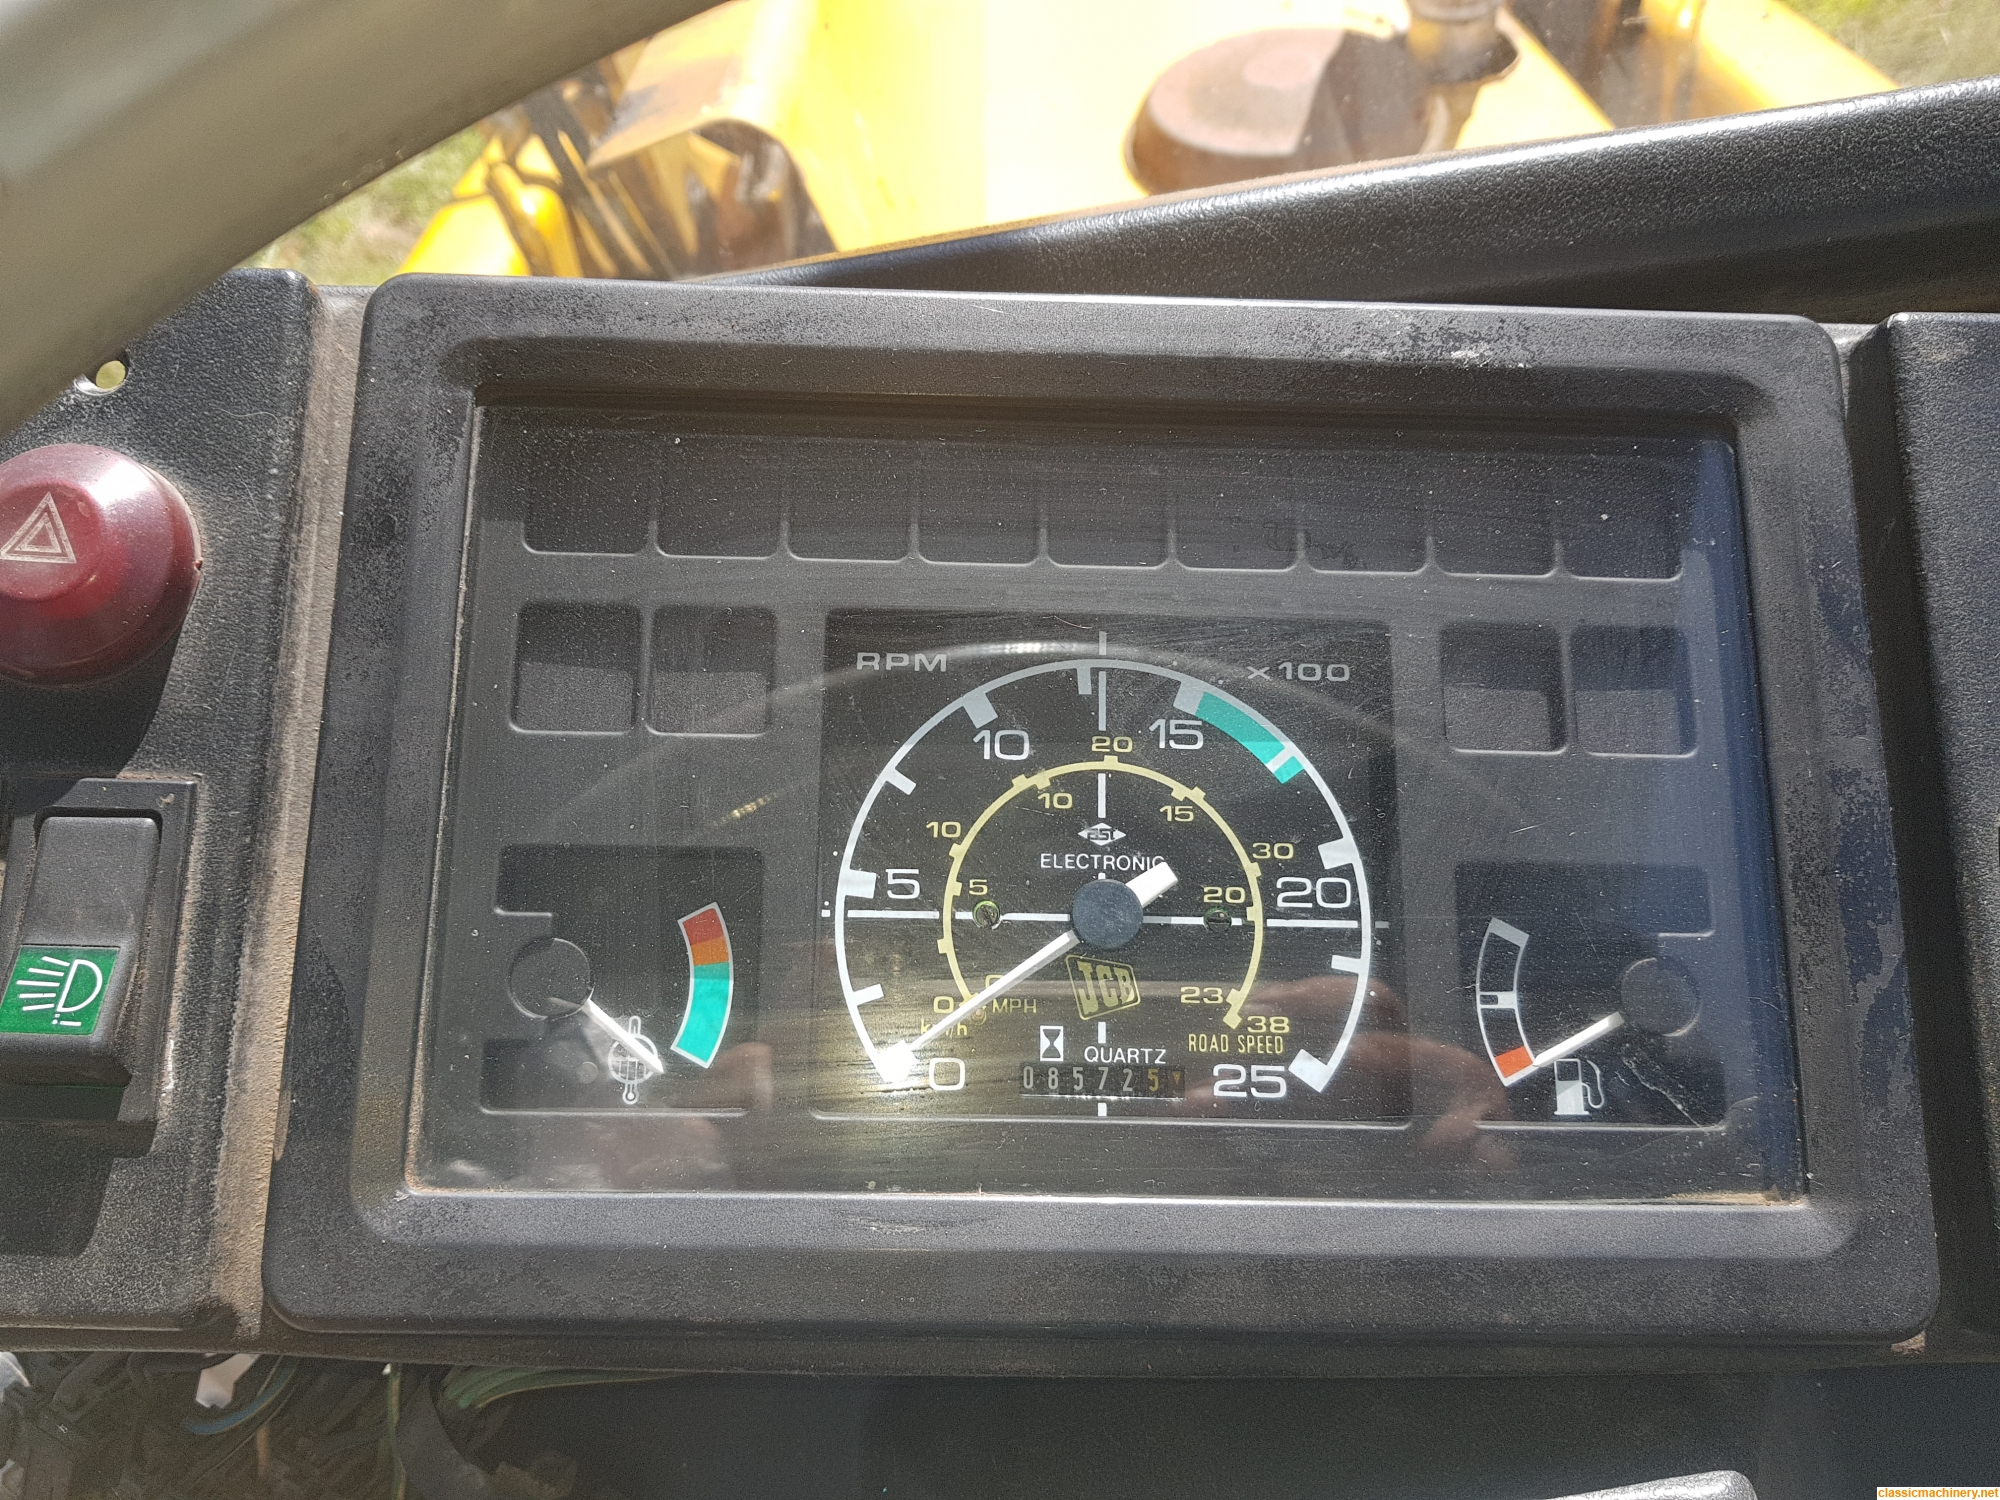 1988 Jcb 3cx Alternator/Tachometer - The Clic Machinery ... Jcb Alternator Wiring Diagram on basic gm alternator wiring, jeep alternator wiring, volvo alternator wiring, freightliner alternator wiring, yanmar alternator wiring, new holland alternator wiring, clark alternator wiring, detroit diesel alternator wiring, honda alternator wiring, landini alternator wiring, mustang alternator wiring, subaru alternator wiring, international alternator wiring, mando alternator wiring, mercedes alternator wiring, delta alternator wiring, gmc alternator wiring, caterpillar alternator wiring, deutz alternator wiring, mack alternator wiring,